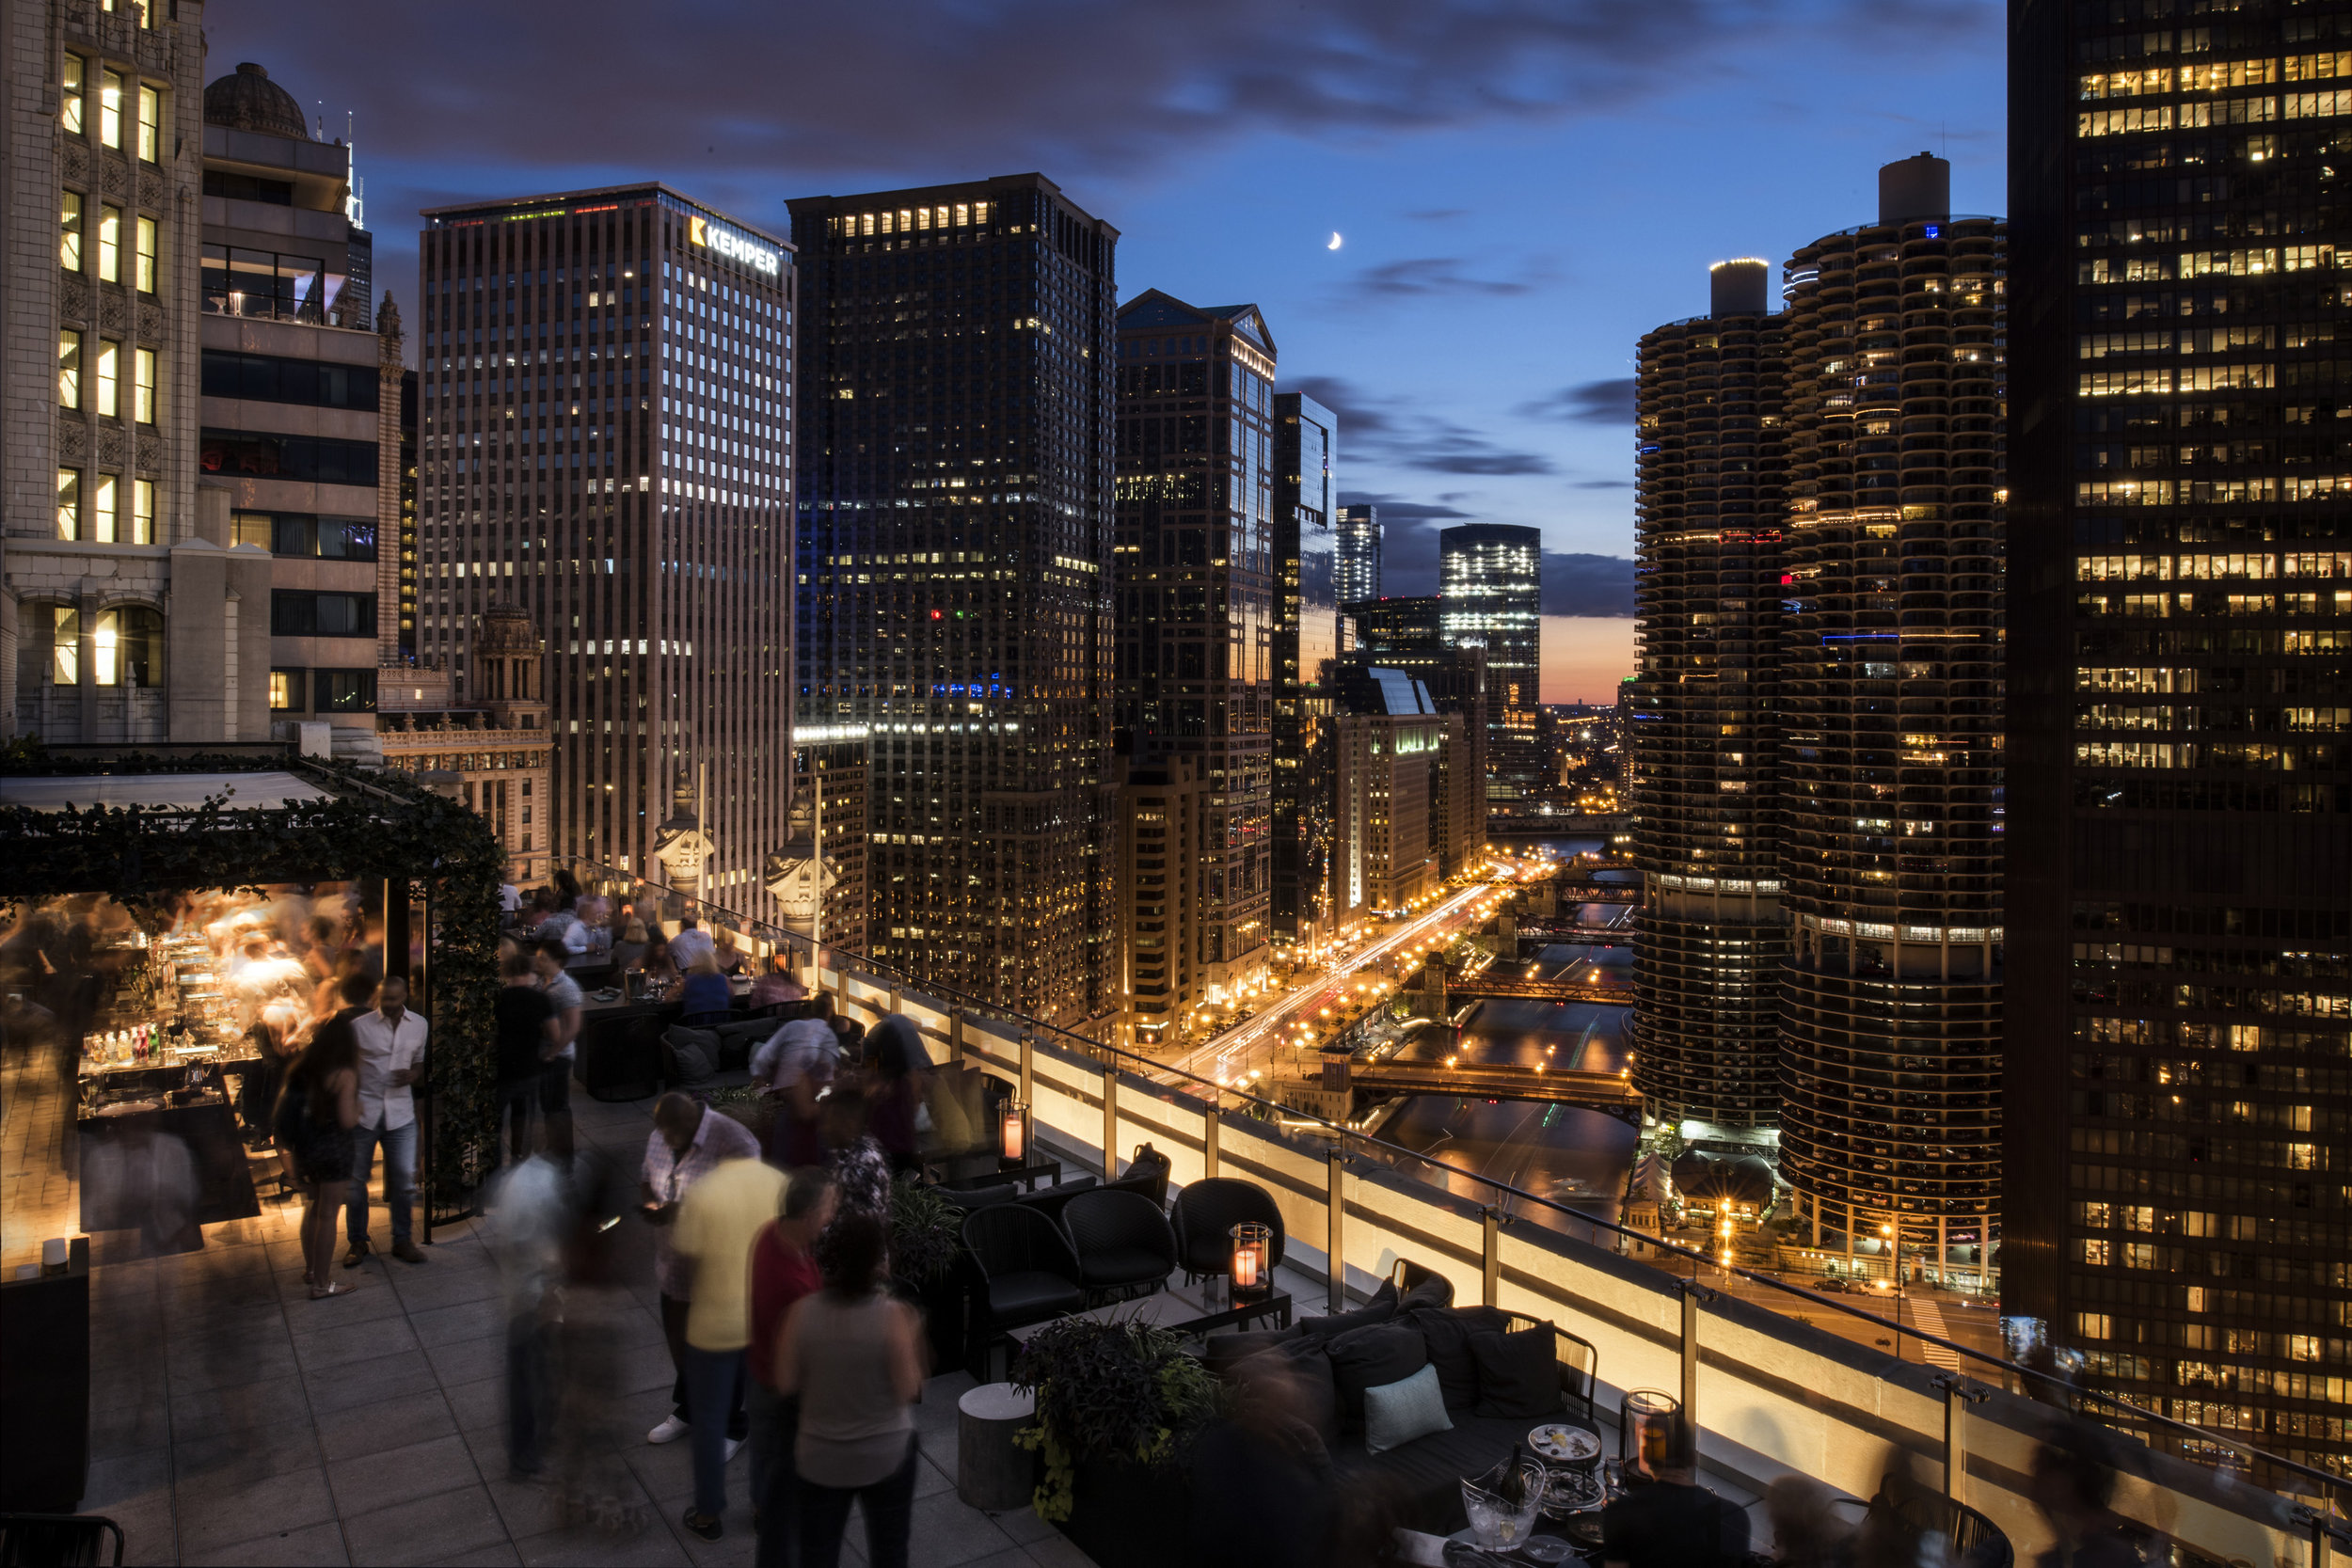 LH Rooftop Chicago River Night View.jpg